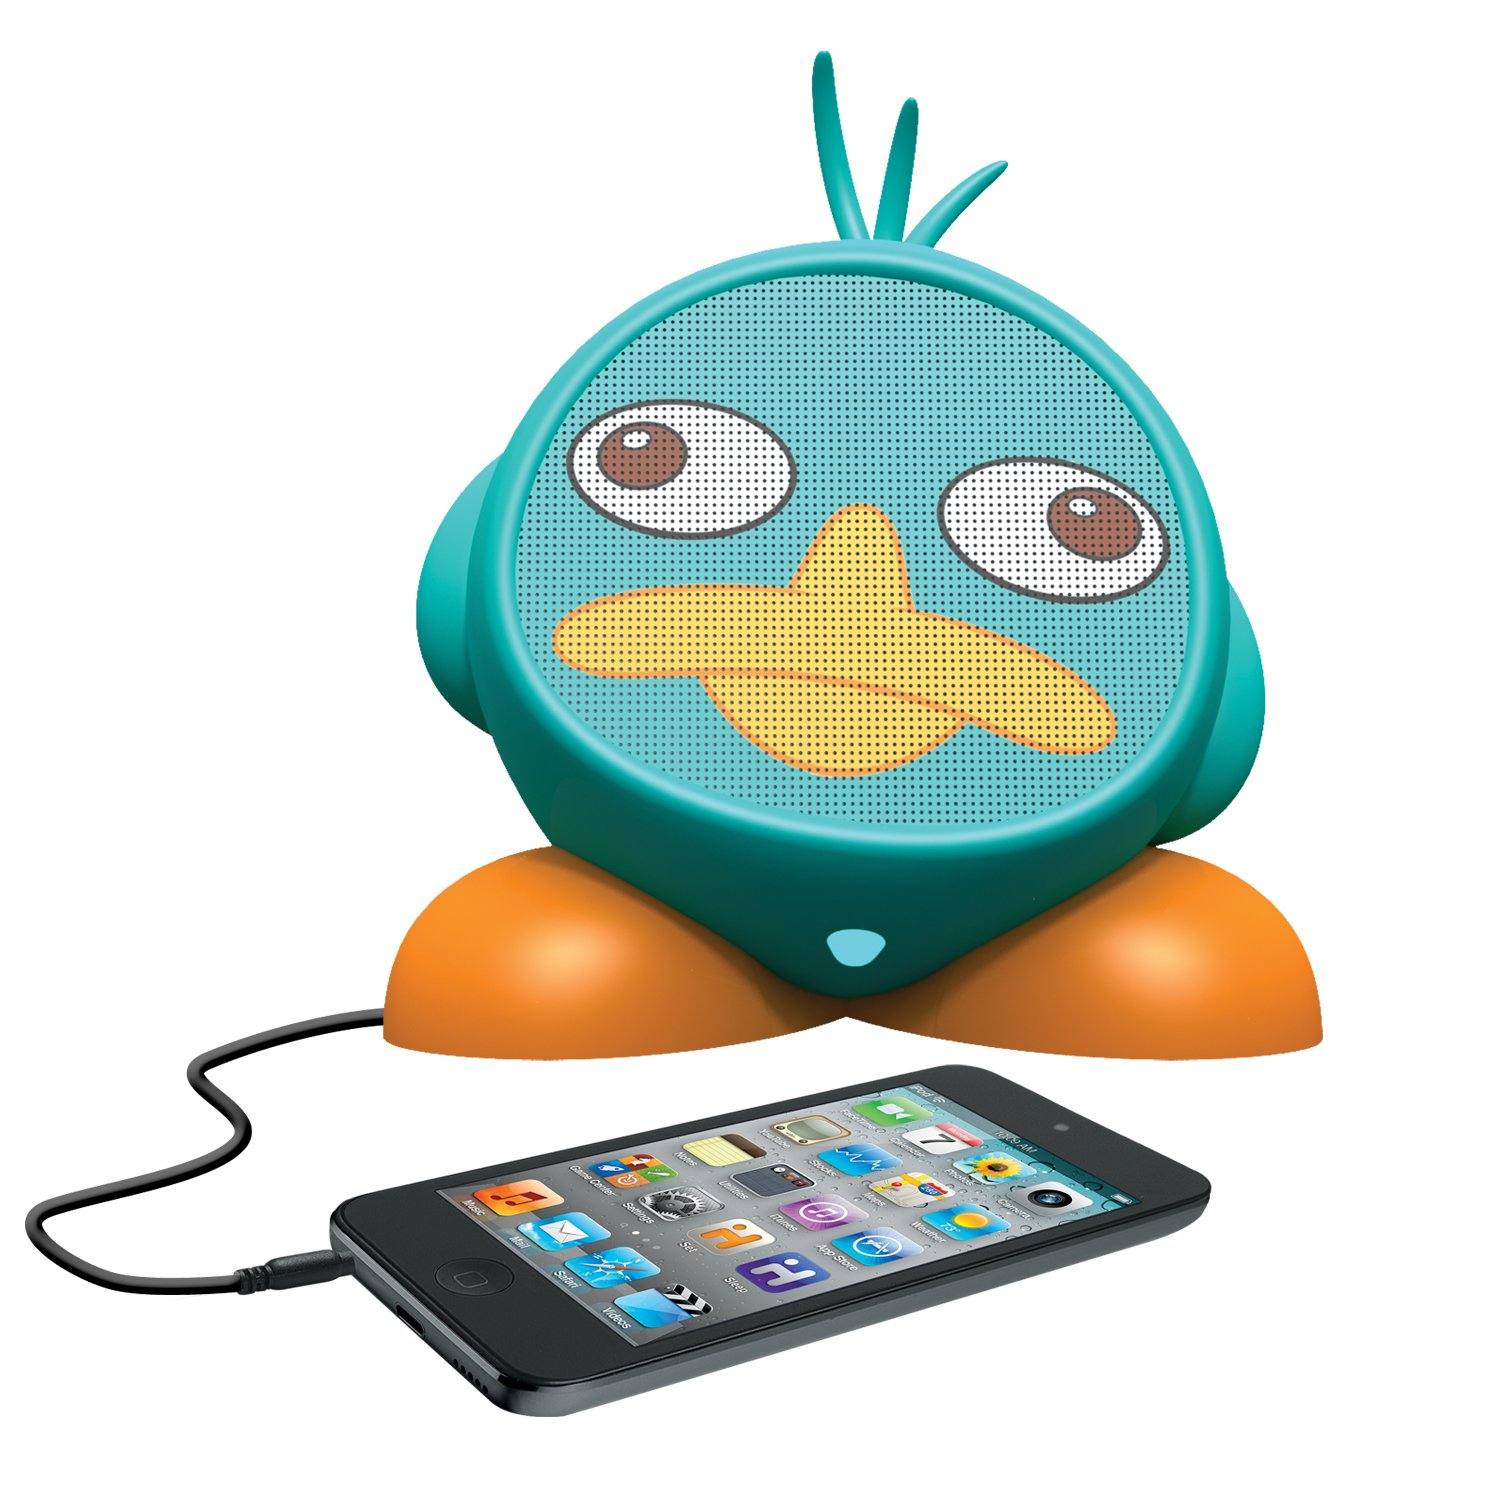 Phineas and Ferb Rechargeable Character Speaker, DF-M662 by eKids